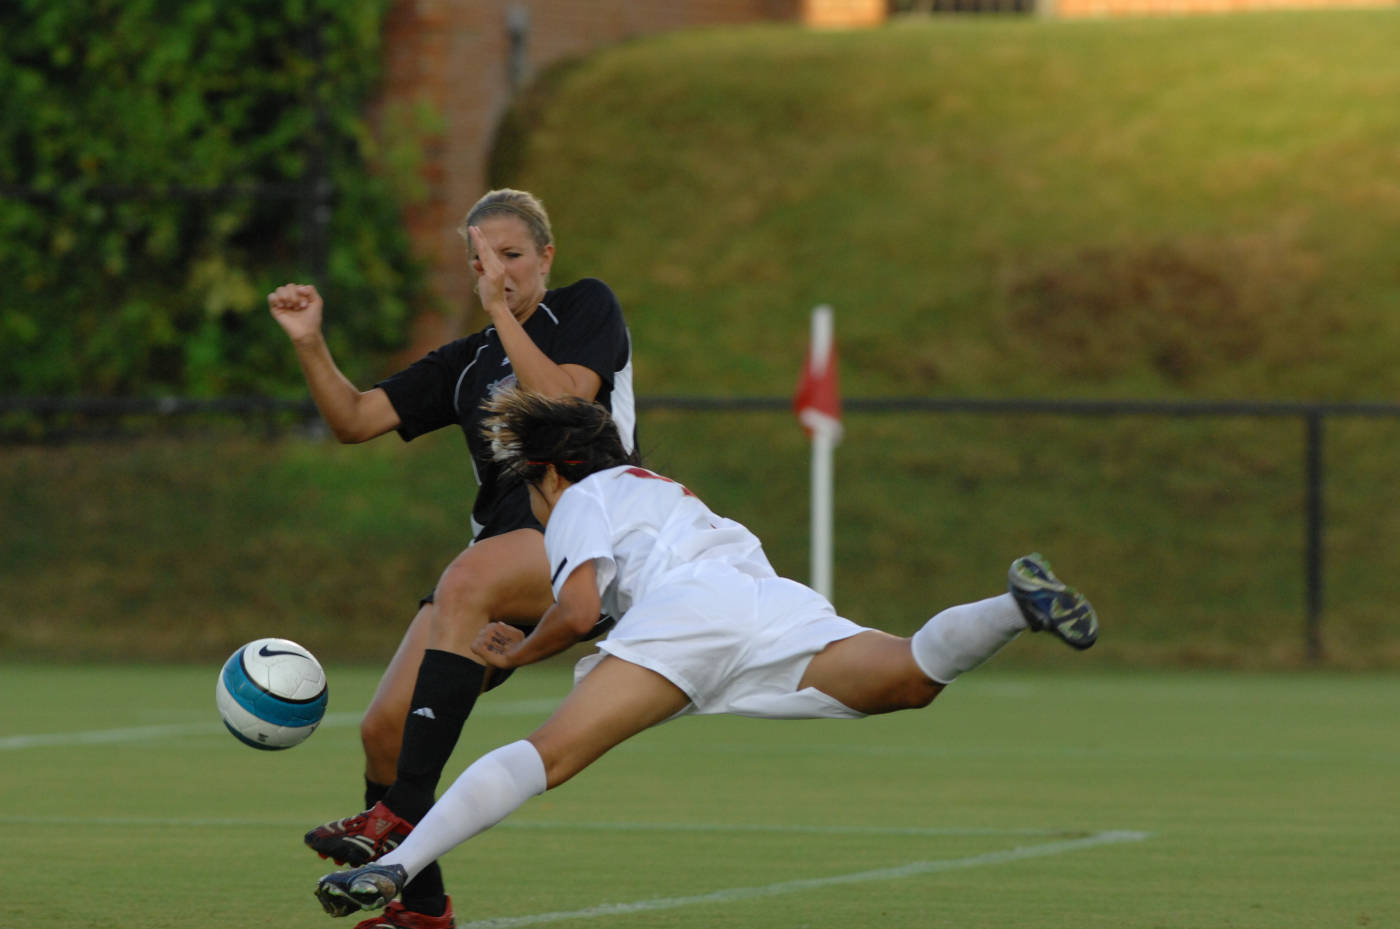 Mami Yamaguchi diving header finds the back of the net for one of her three goals.